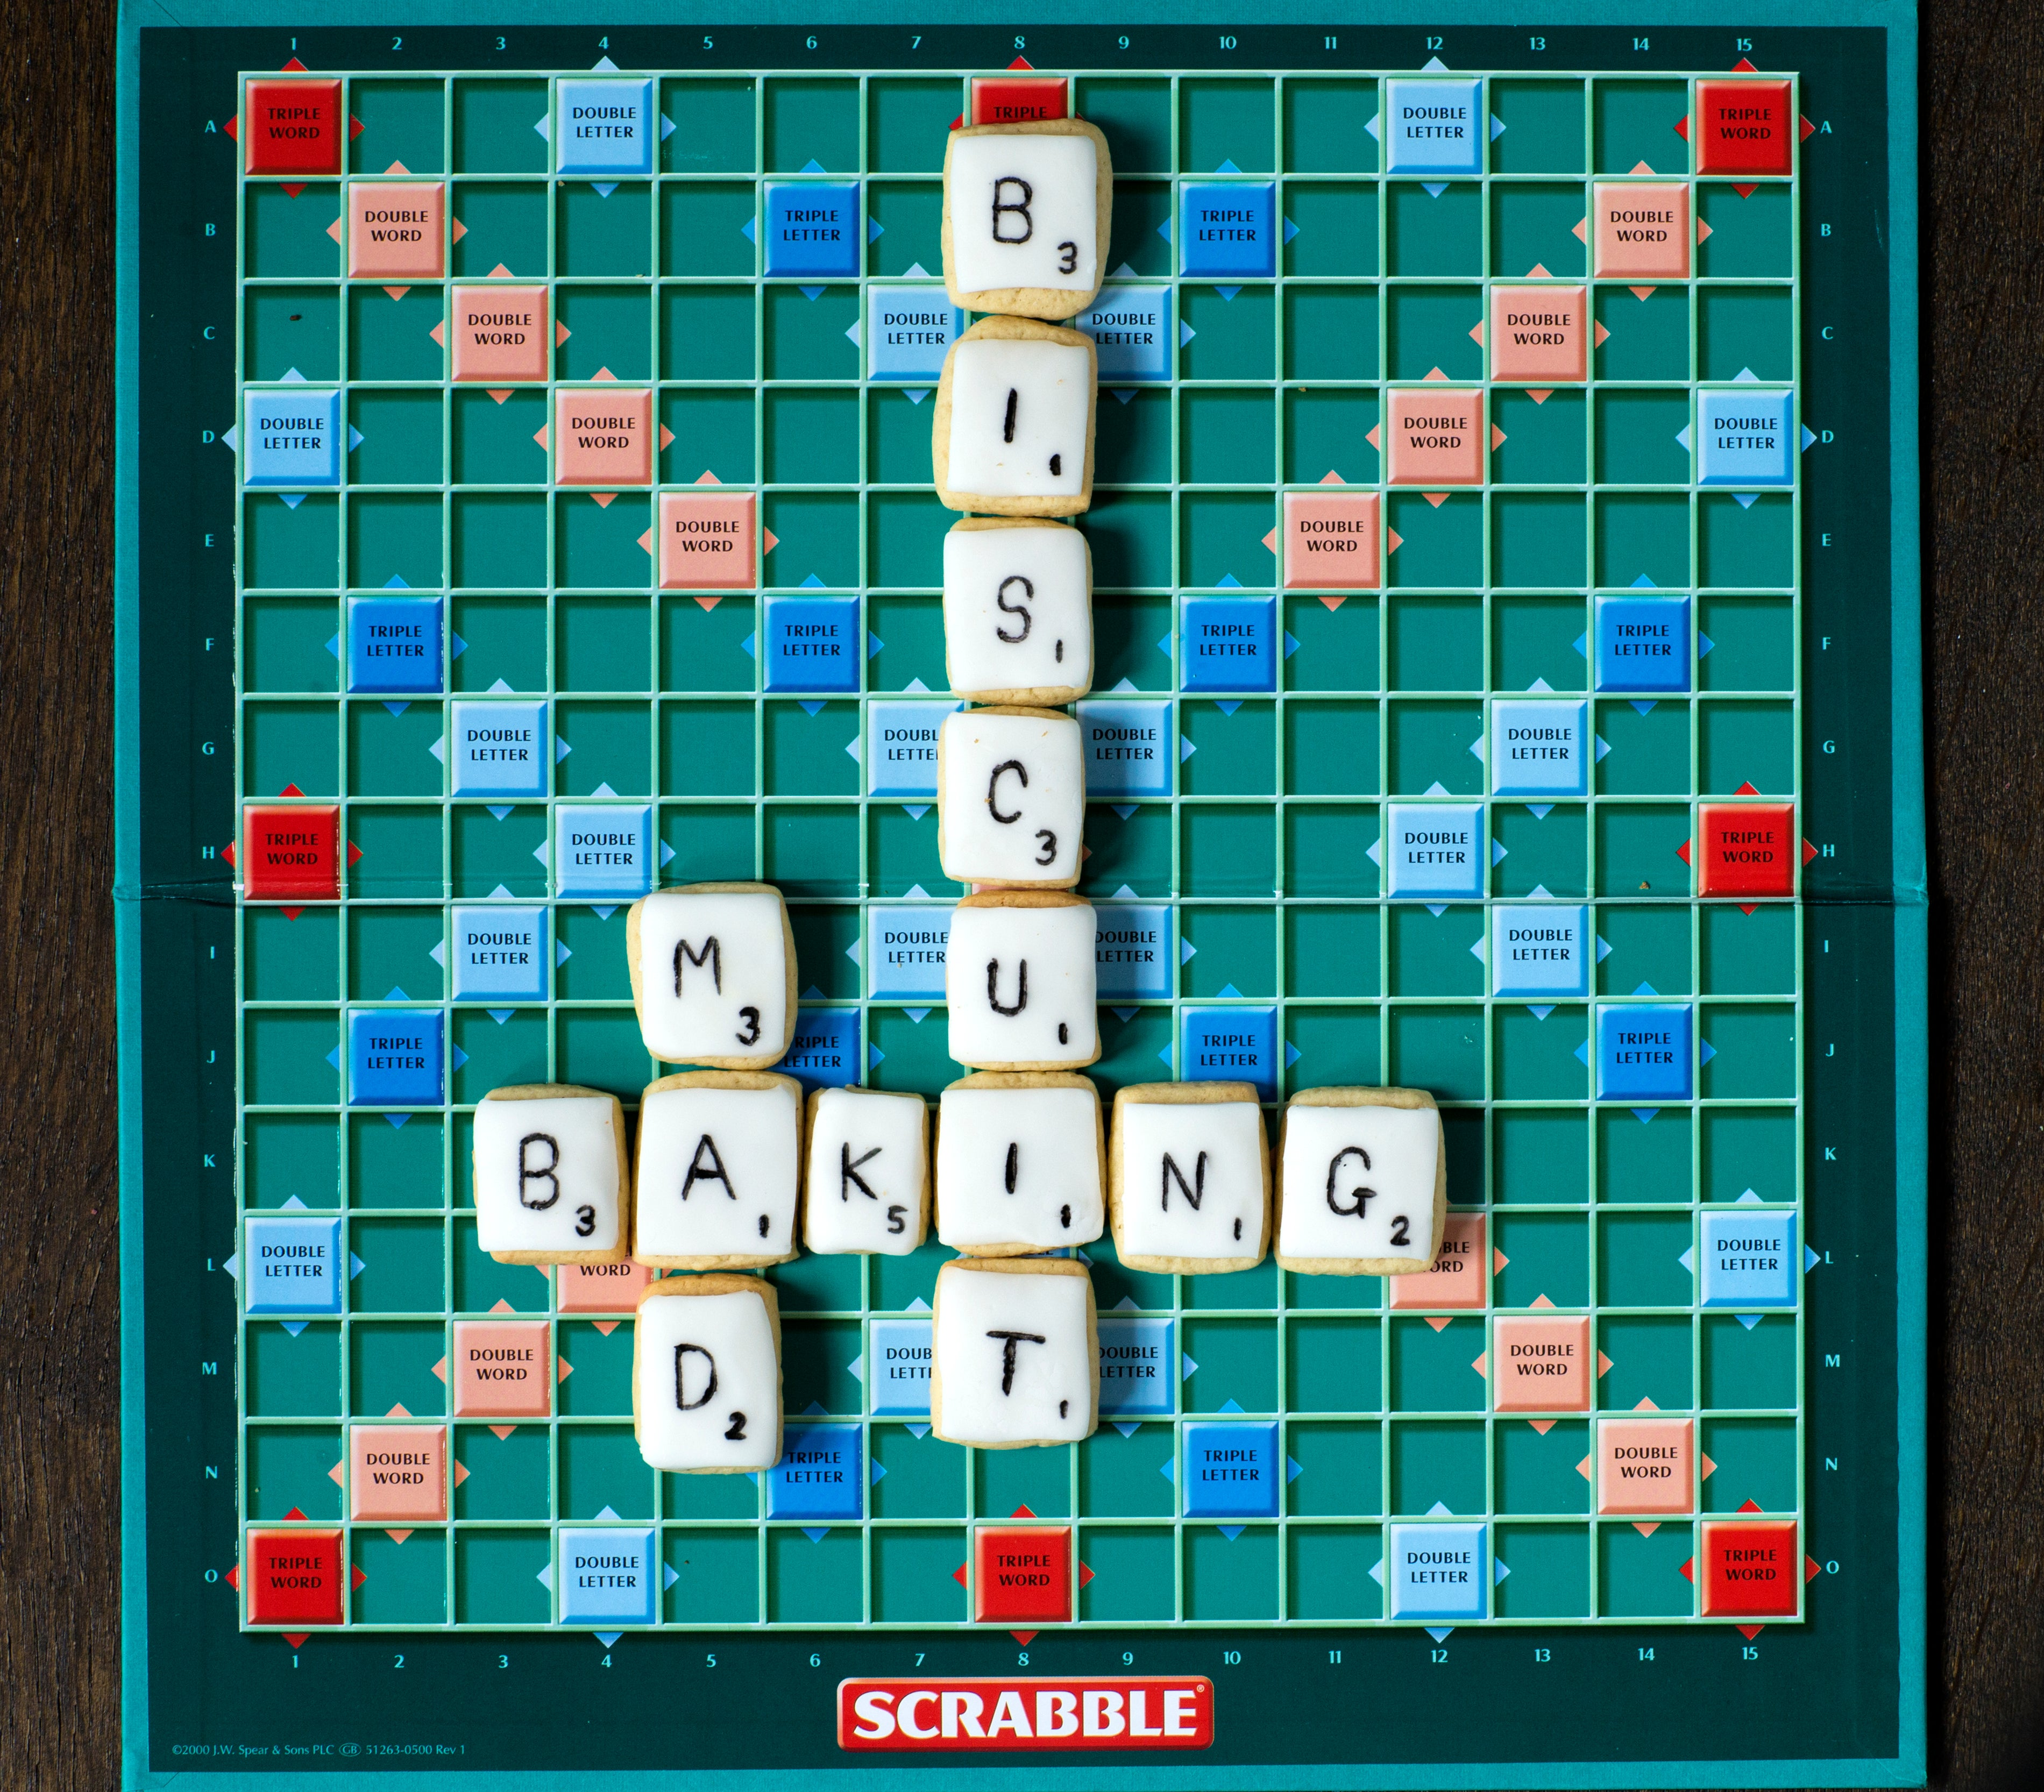 Overhead shot of a scrabble board with iced biscuits on